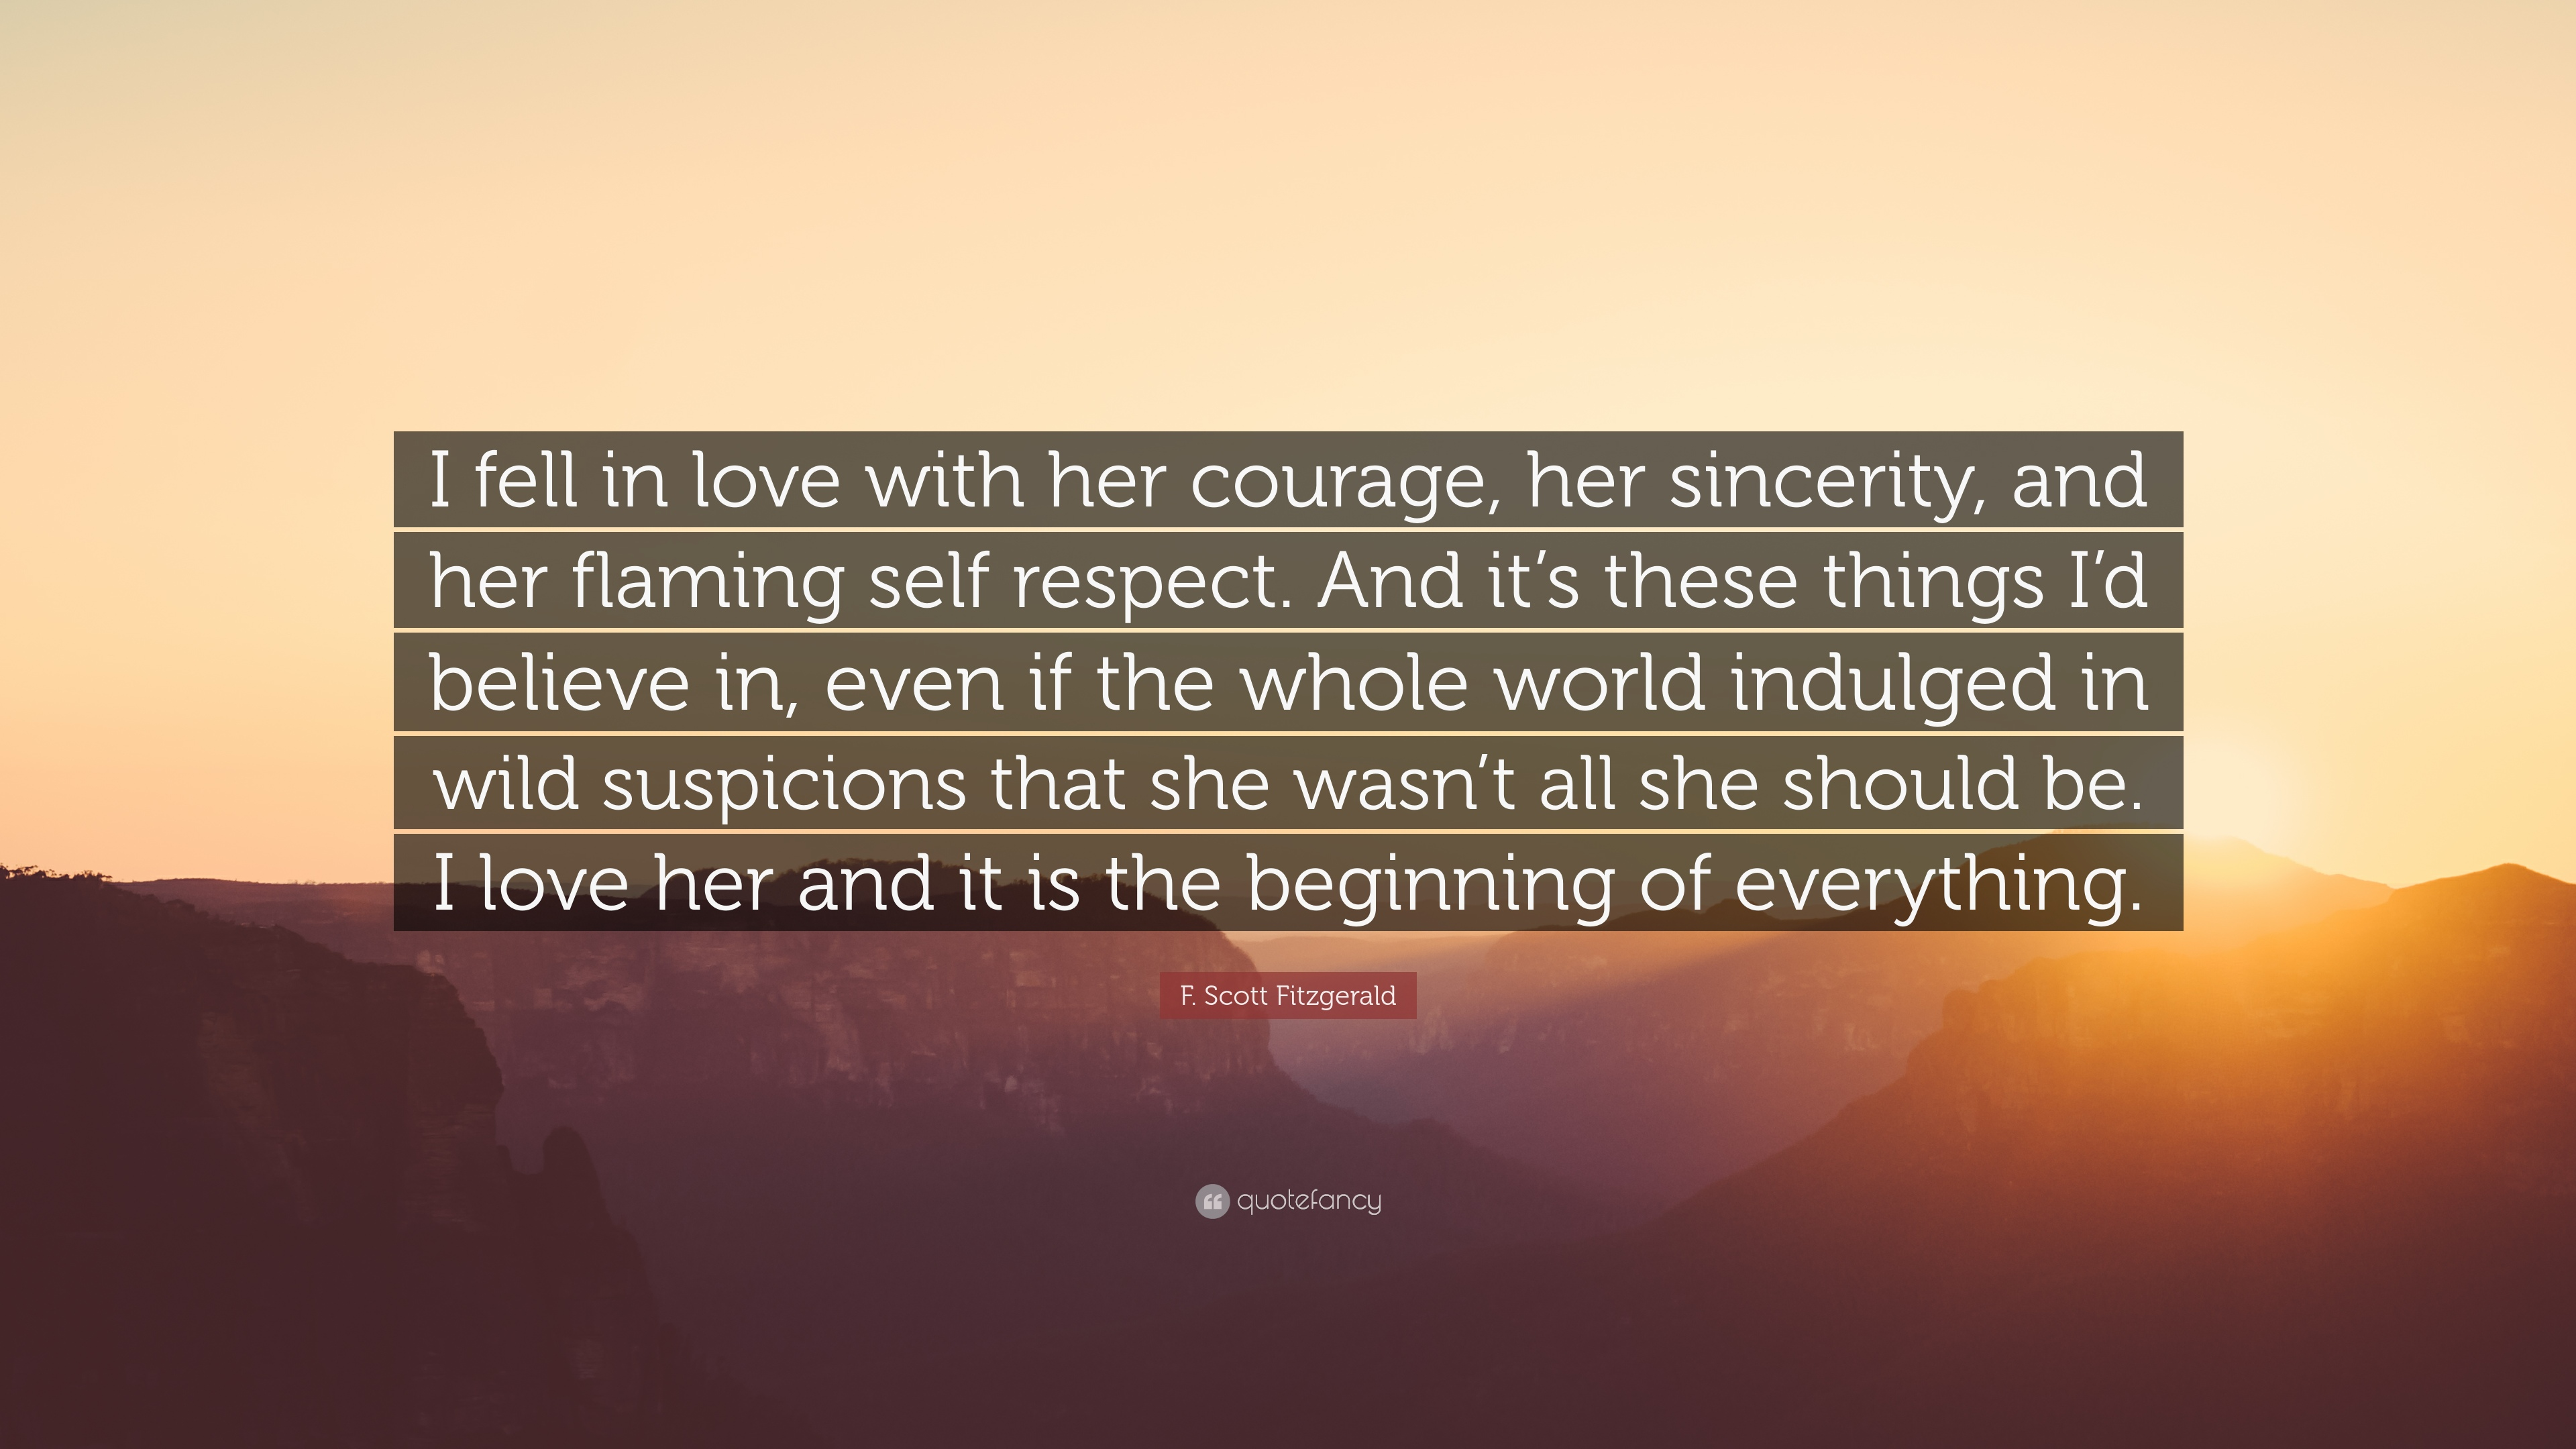 F Scott Fitzgerald Love Quote Fscott Fitzgerald Quote U201cI Fell In Love With  Her Courage